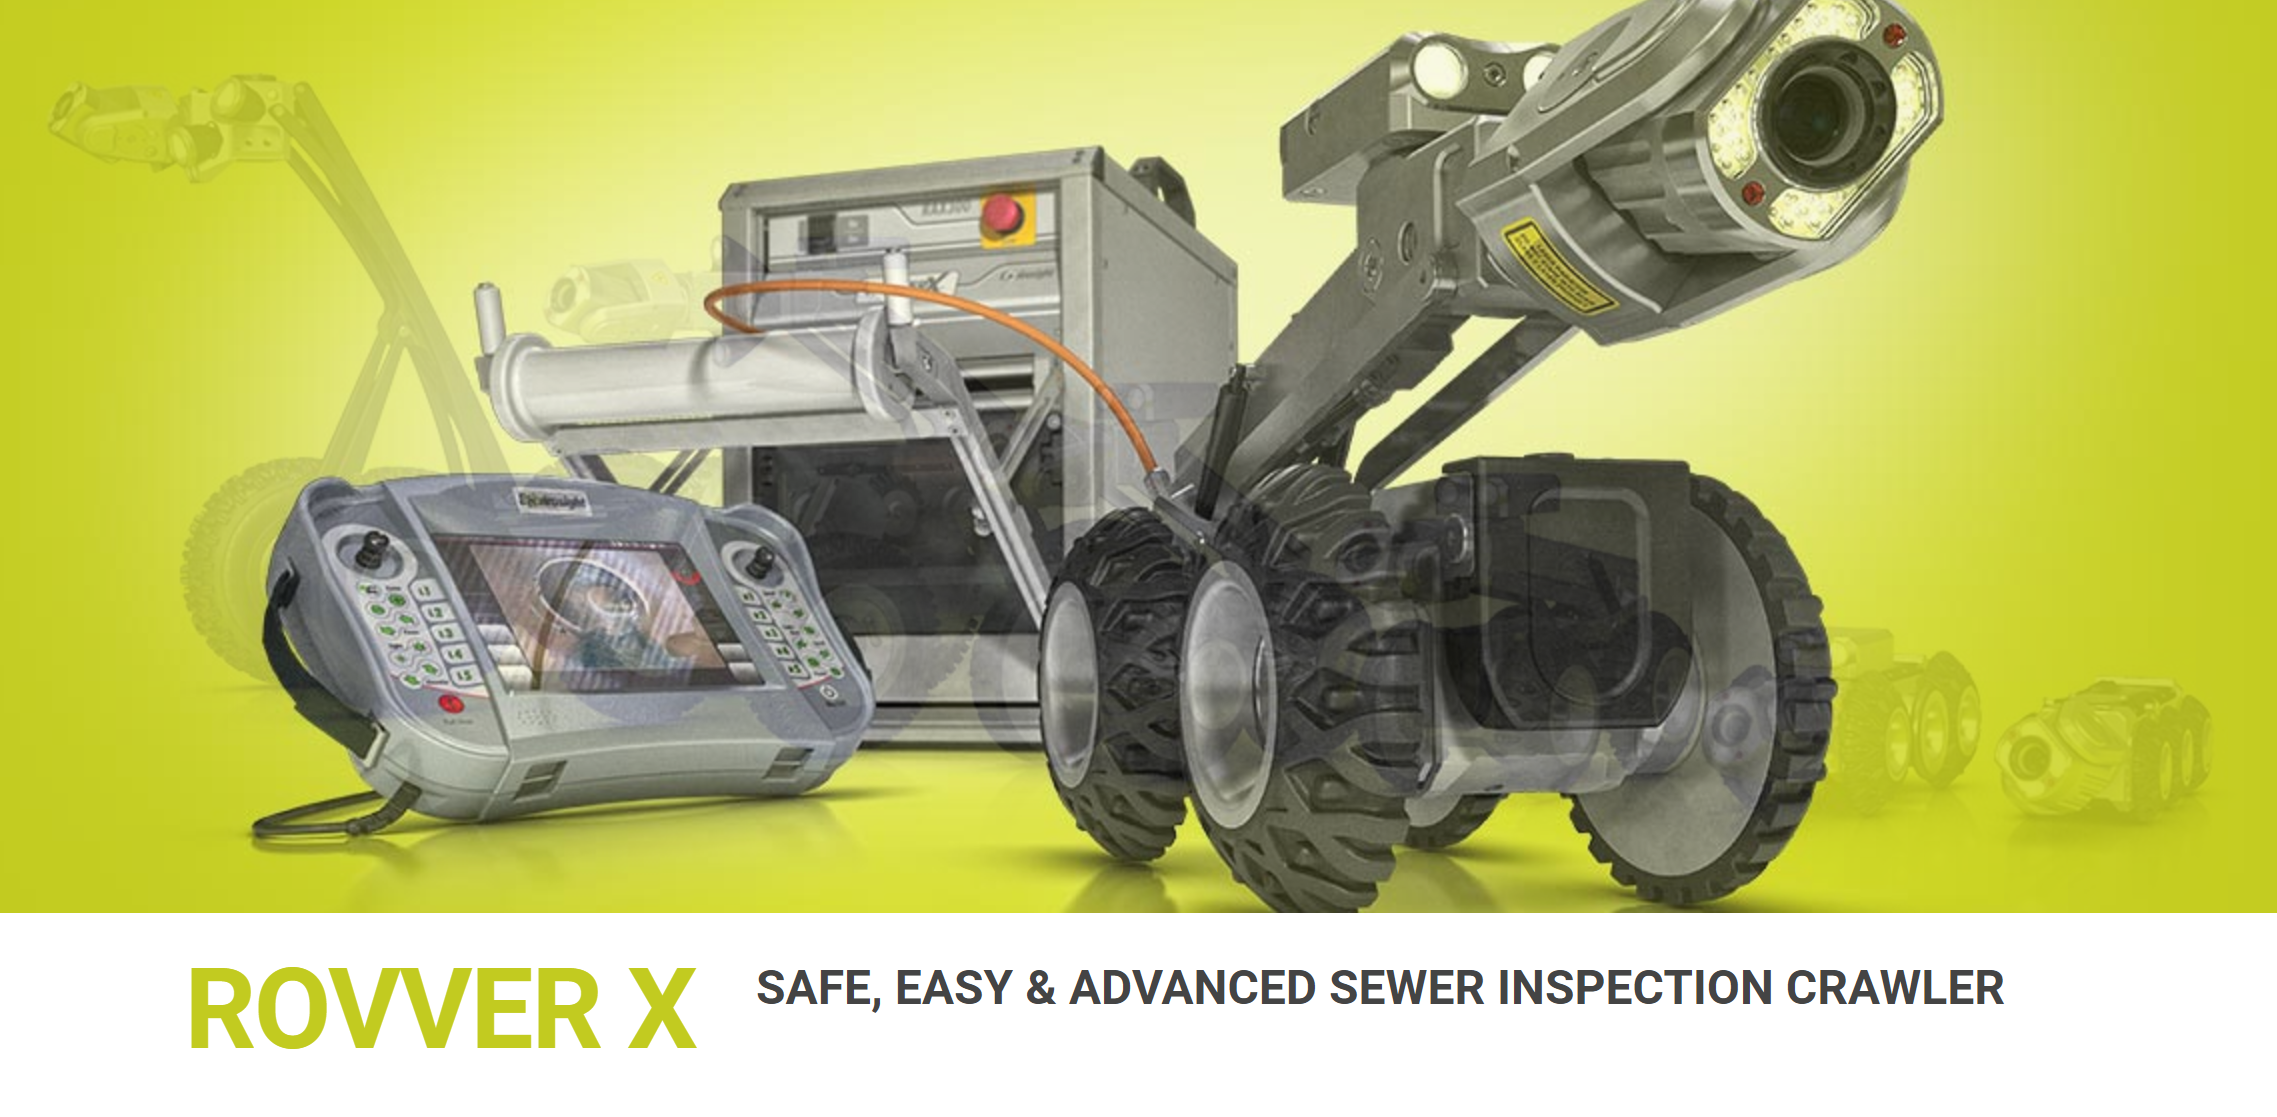 Rovver X - safe, easy and advanced sewer inspection crawler.